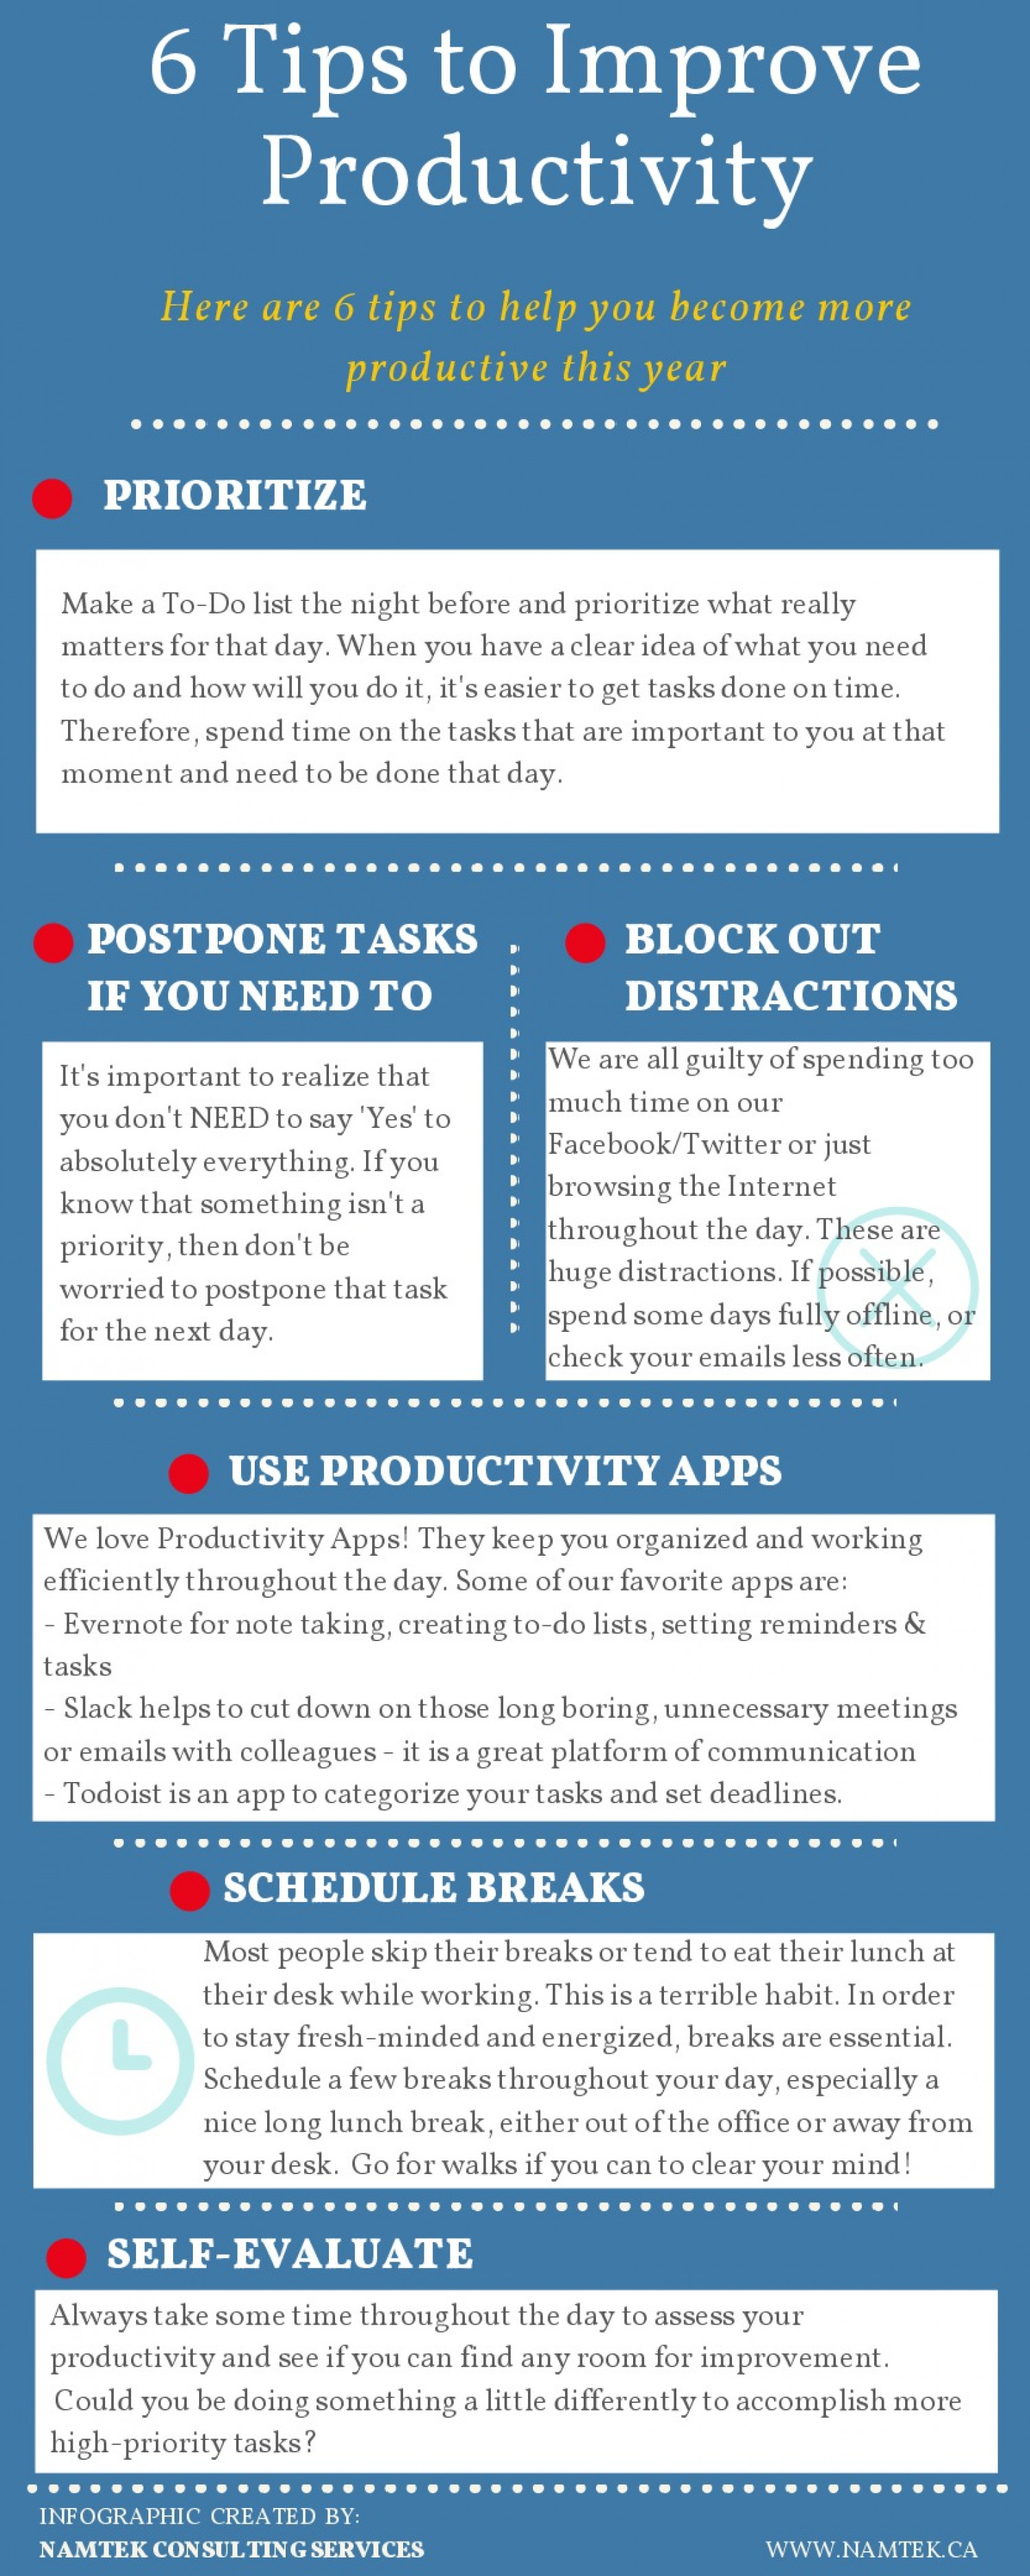 6 Tips To Improve Productivity At The Office | Visual.ly